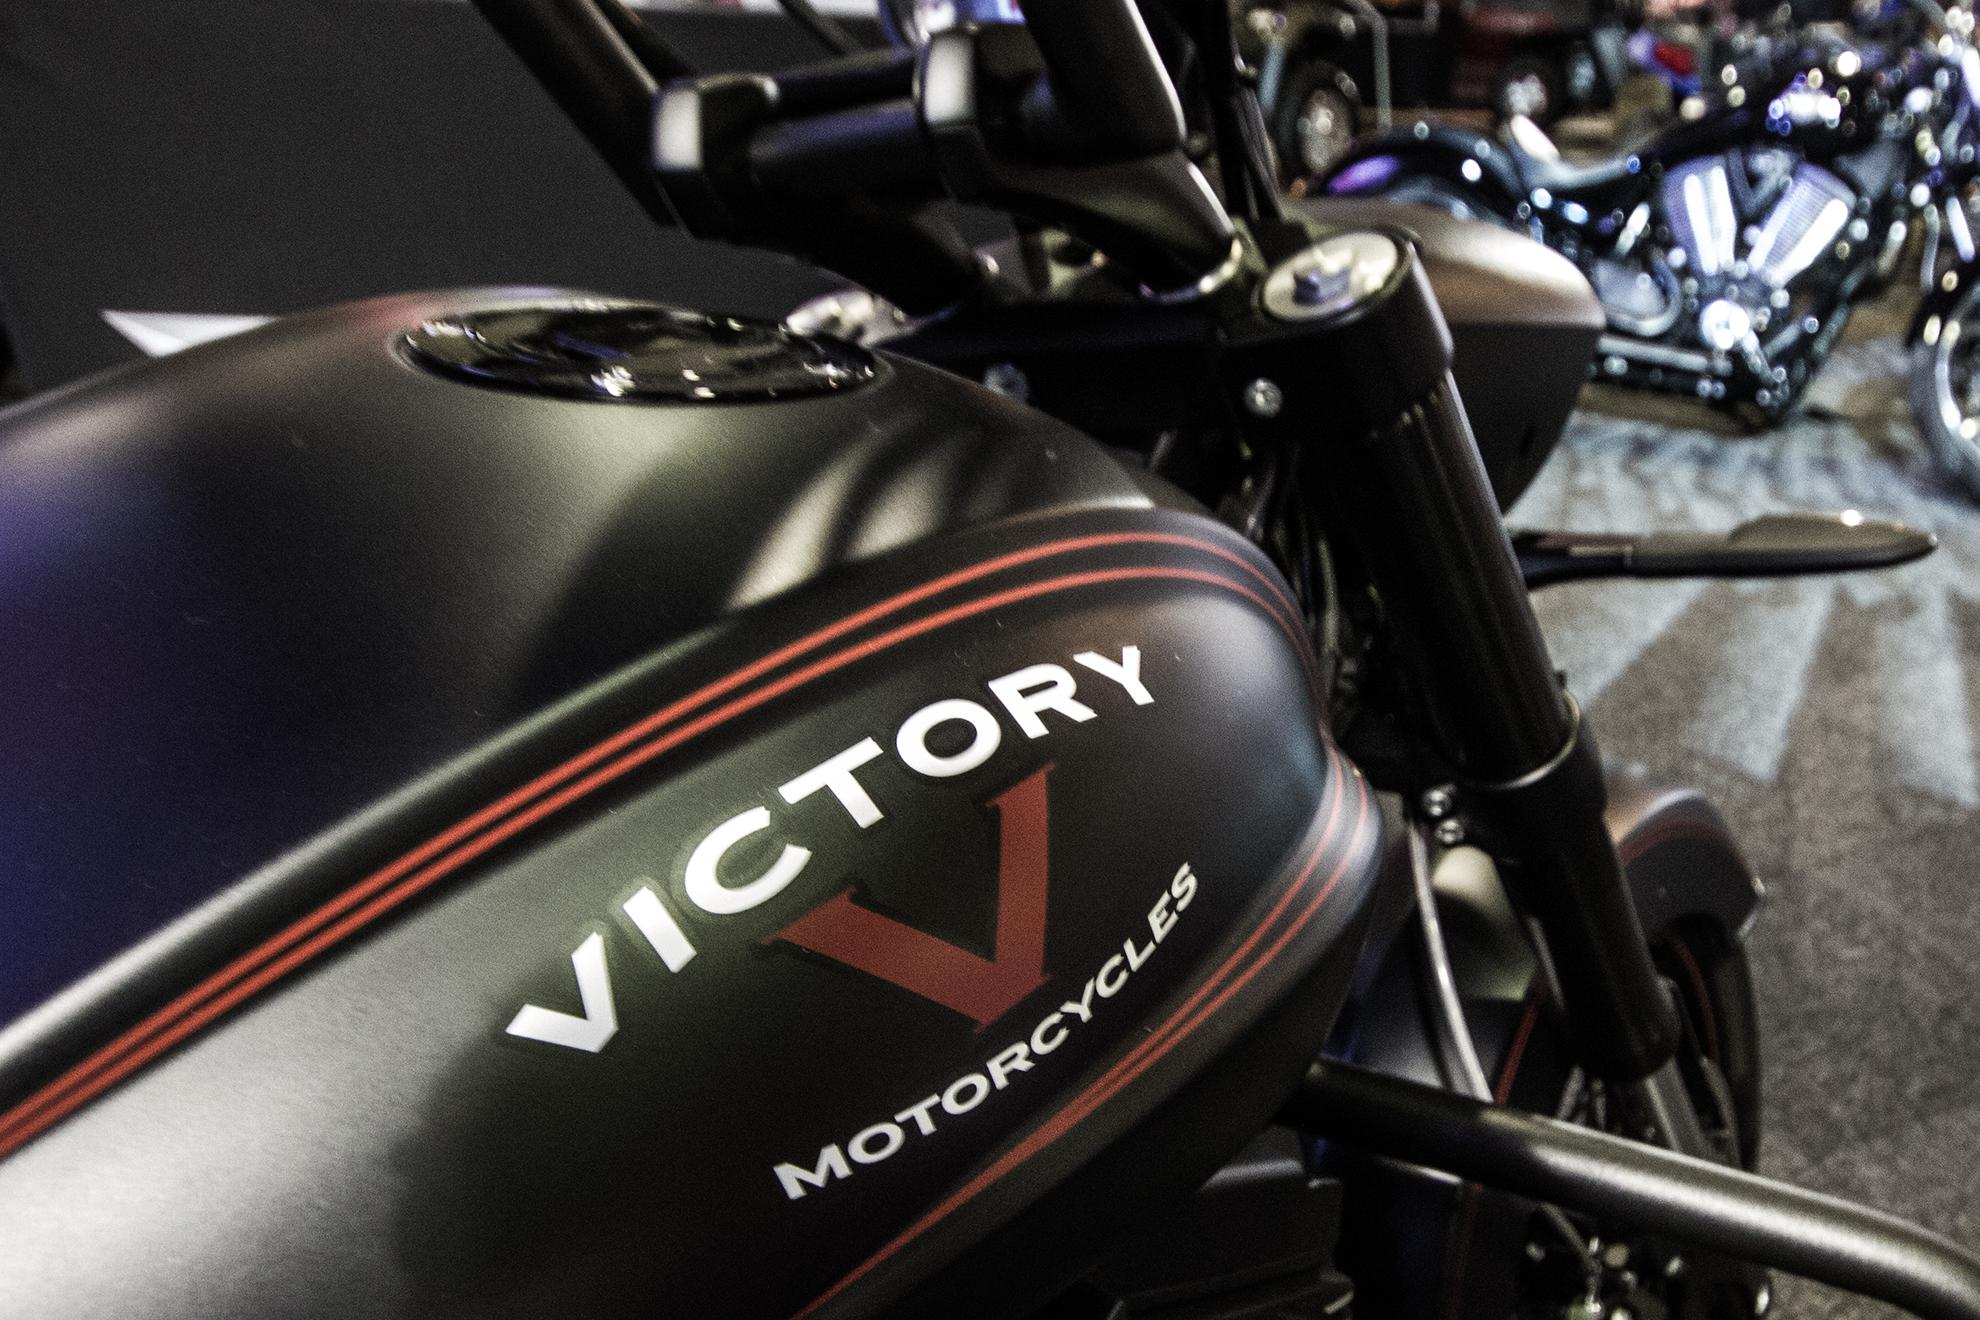 Victory-Johannesburg-Motorcycle-Show-2012-08